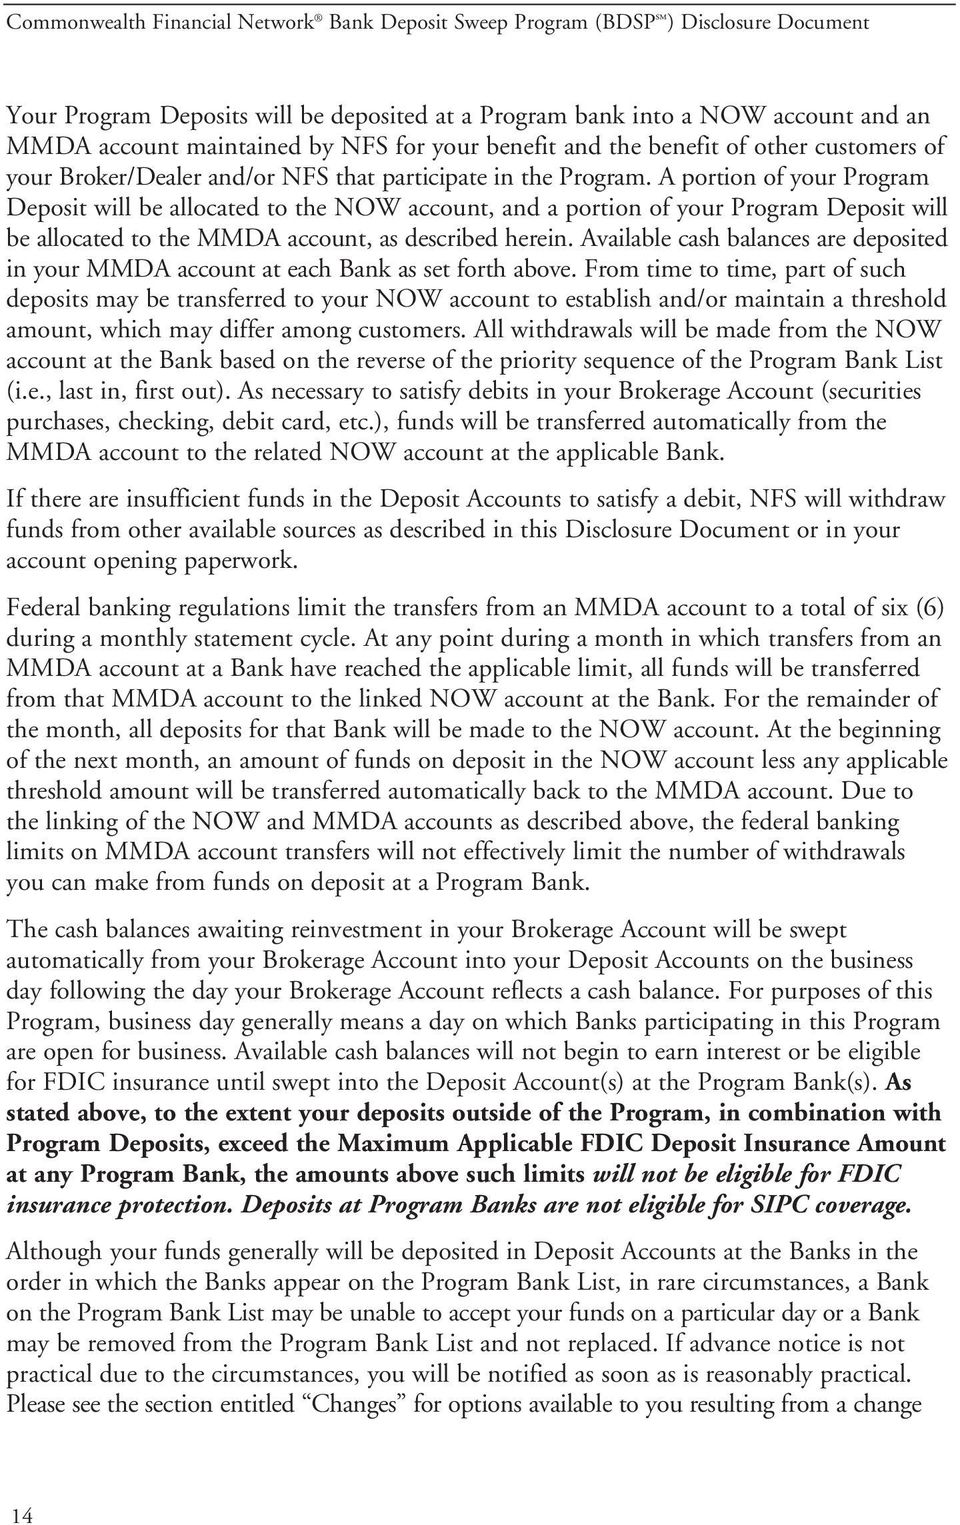 A portion of your Program Deposit will be allocated to the NOW account, and a portion of your Program Deposit will be allocated to the MMDA account, as described herein.